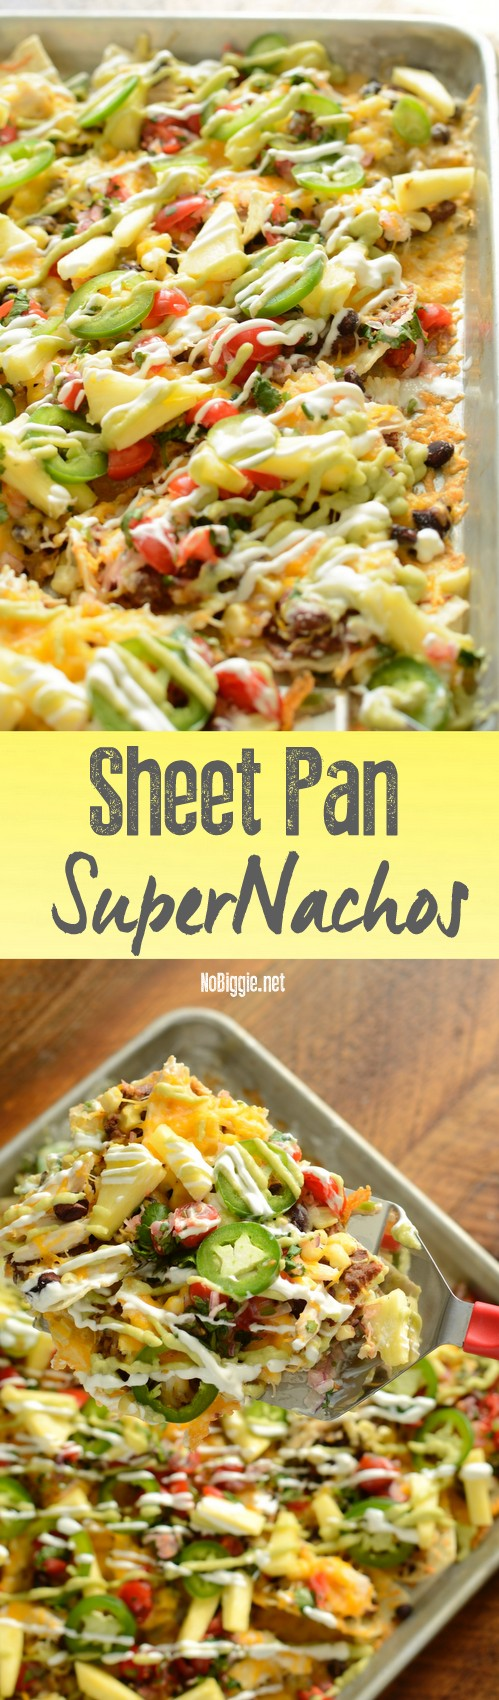 Sheet Pan Super Nachos -  not your ordinary nachos . #gamedayfoods #nachos #sheetpanmeals #sheetpannachos